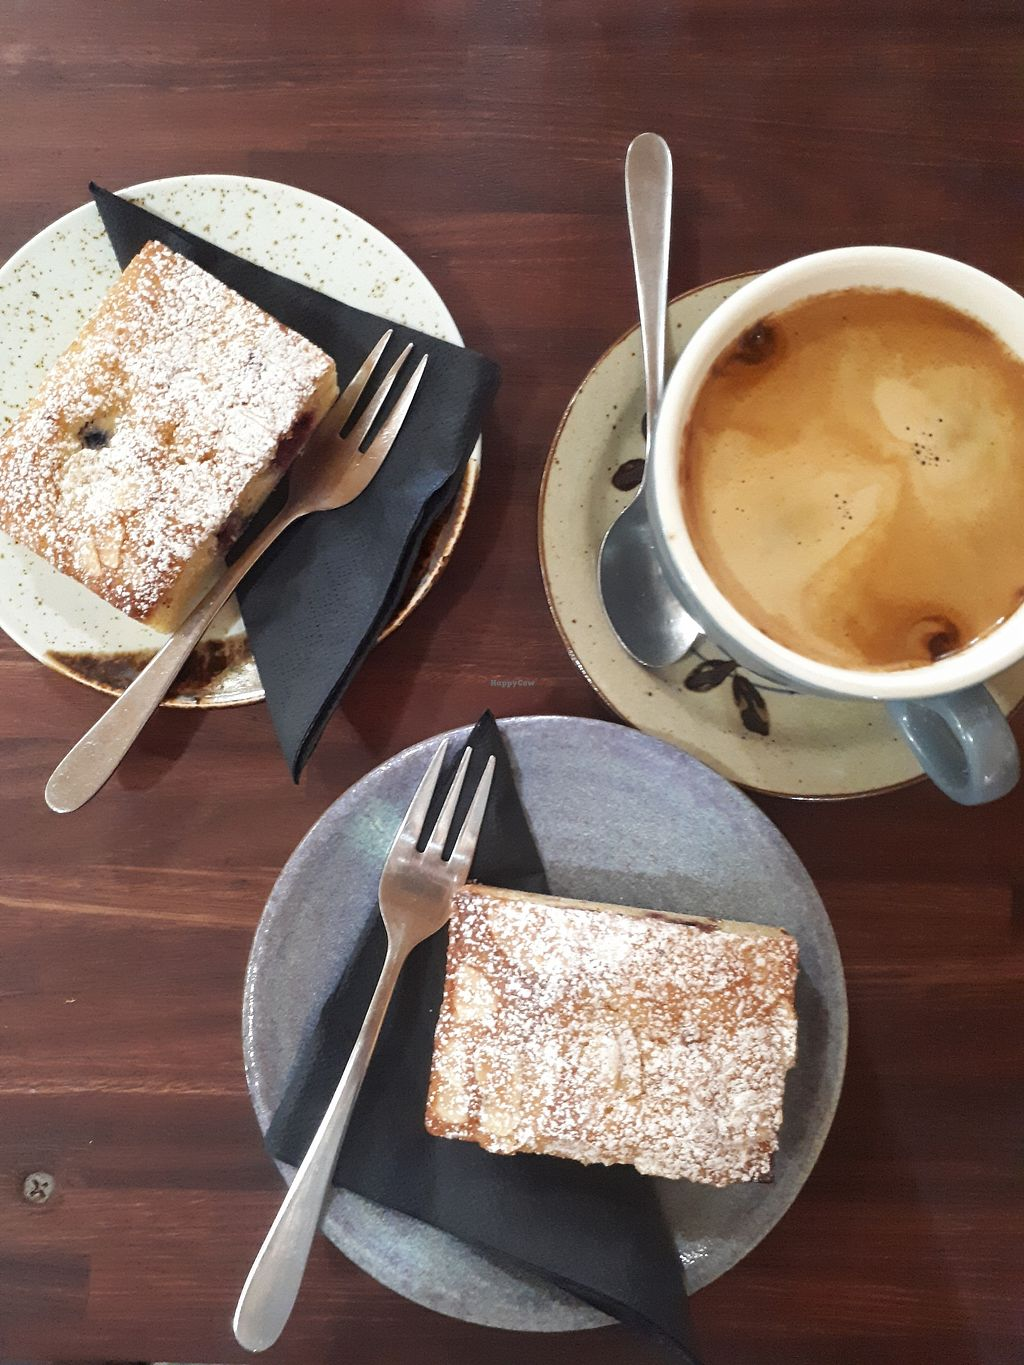 "Photo of Sensations Cafe  by <a href=""/members/profile/thegreenfig"">thegreenfig</a> <br/>Coffee and cake  <br/> November 22, 2017  - <a href='/contact/abuse/image/97702/328096'>Report</a>"